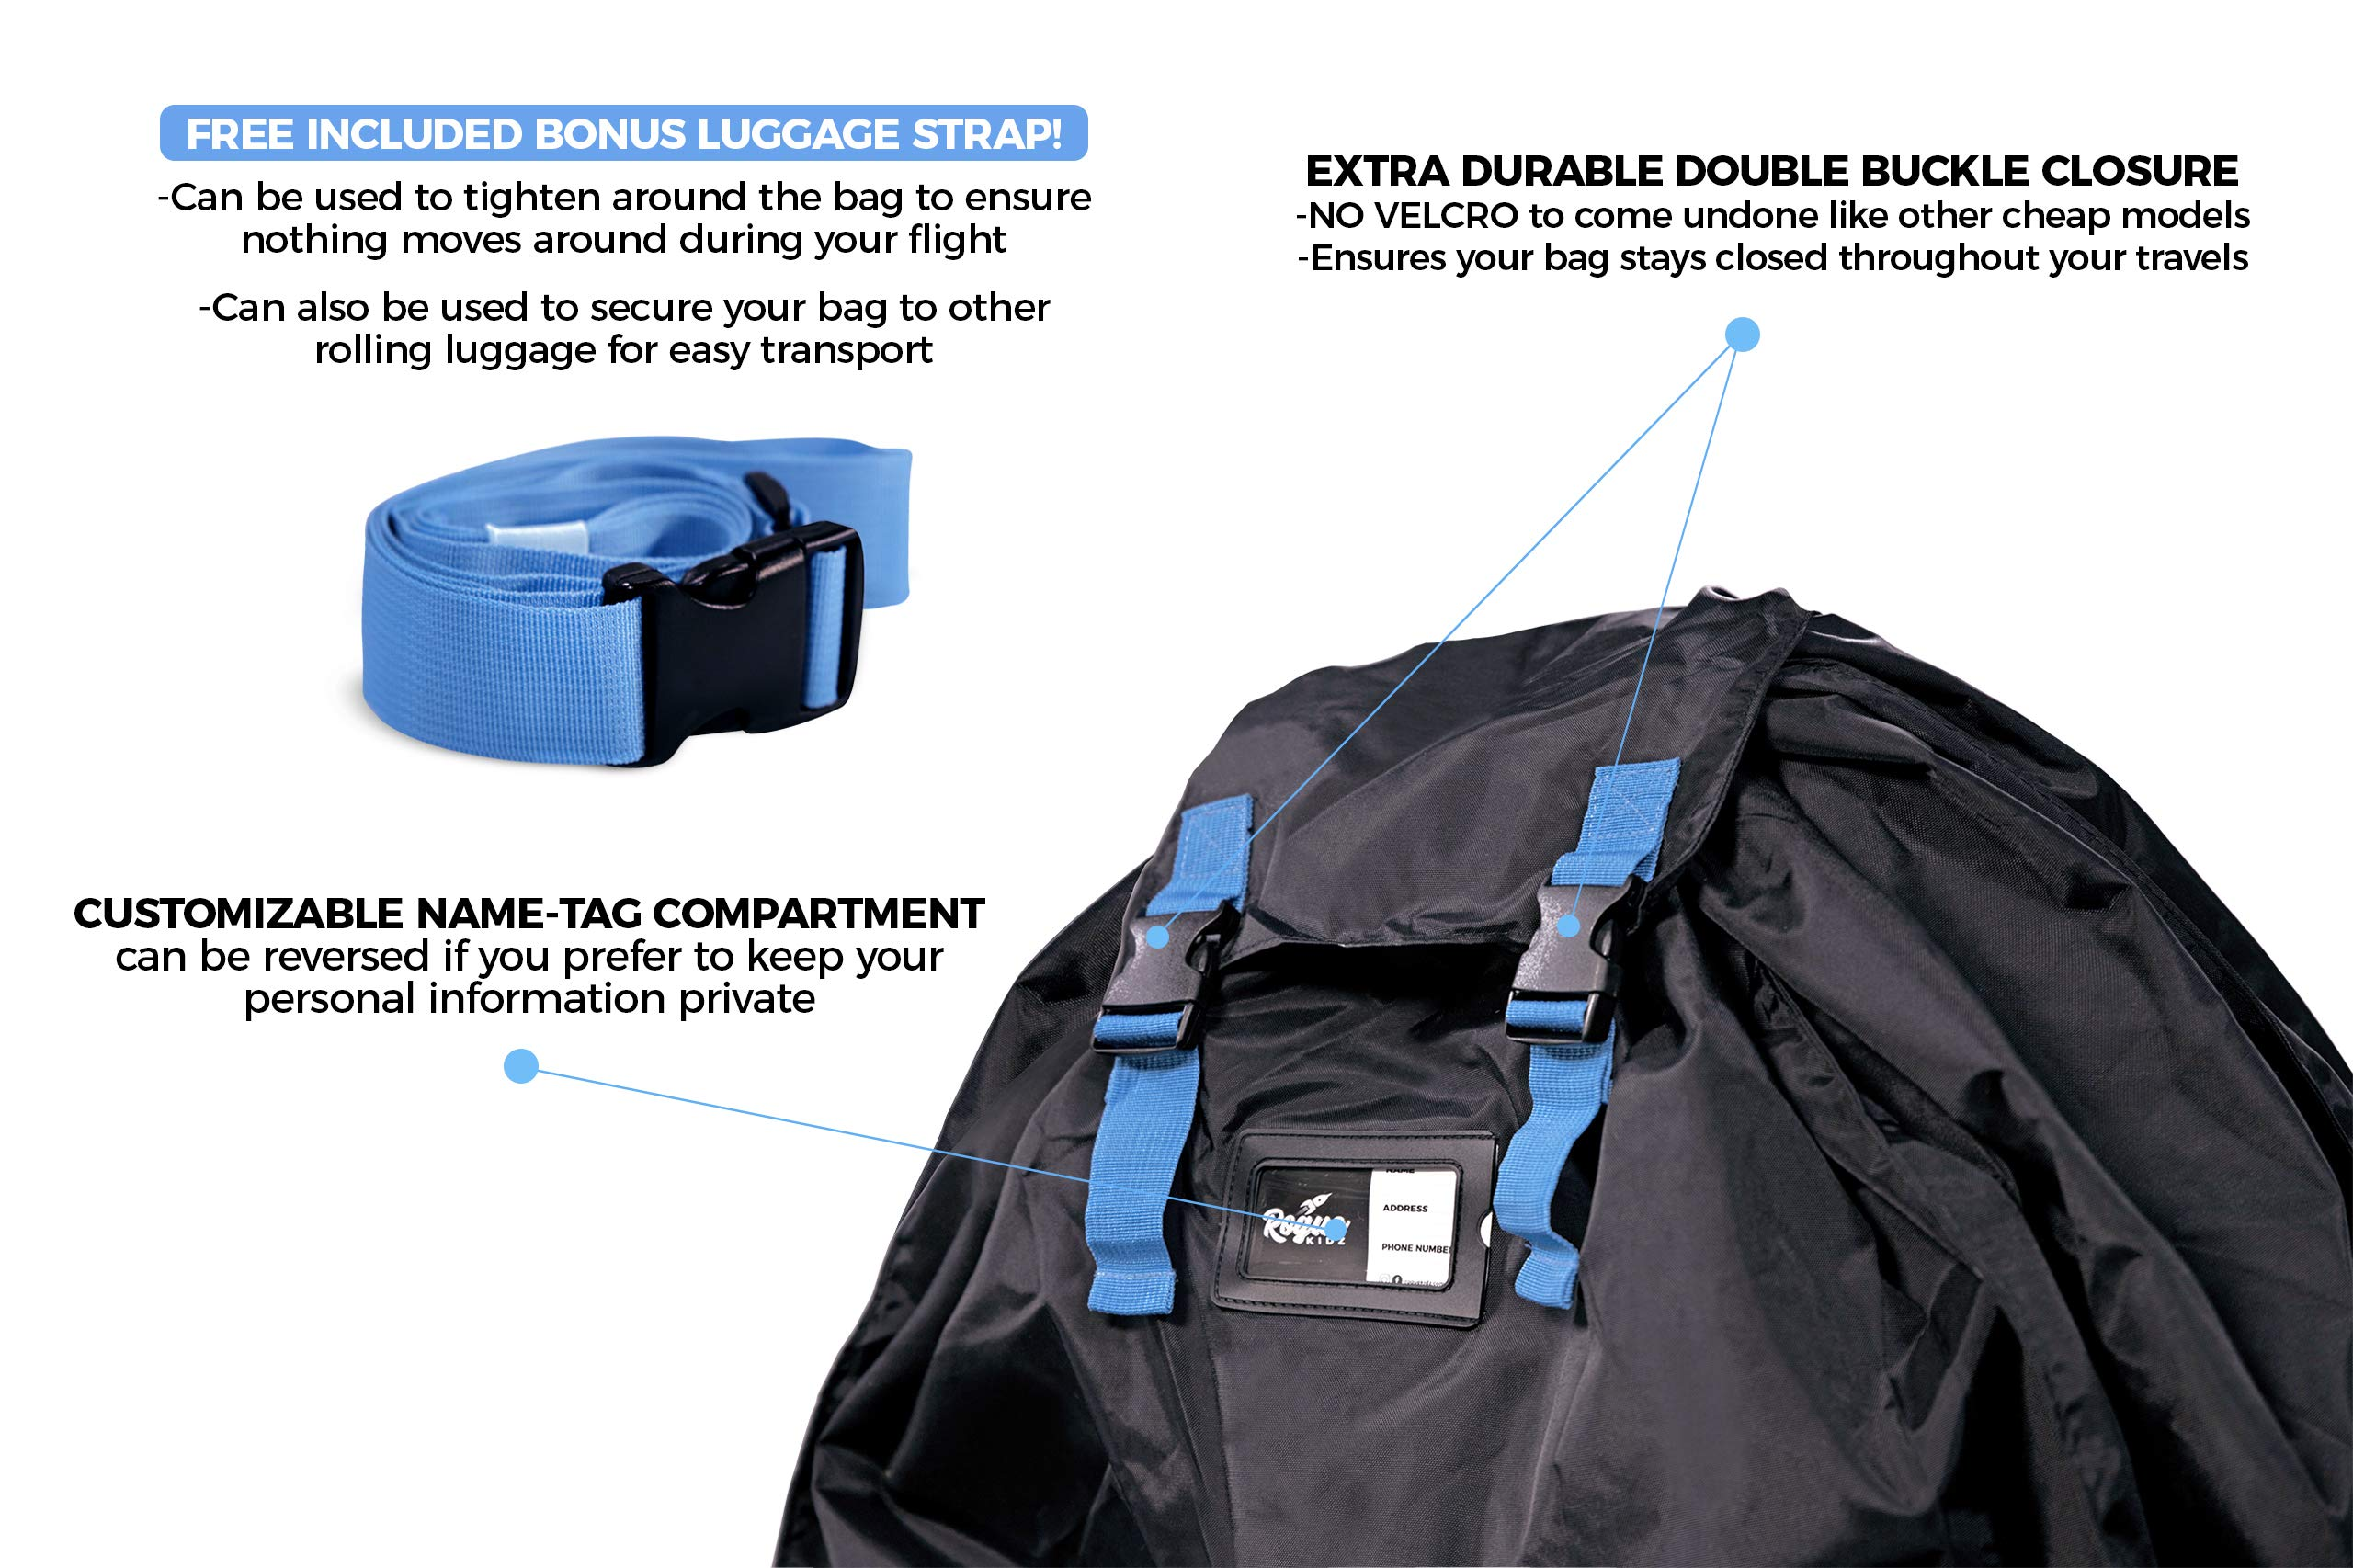 Rogue Kidz Single and Double Stroller Travel Bag For Airplane Gate Check - Durable Universal Large XL Cover With Padded Backpack Straps- Waterproof Heavy Duty Nylon Traveling Protector With Carry Case by Rogue Kidz (Image #5)